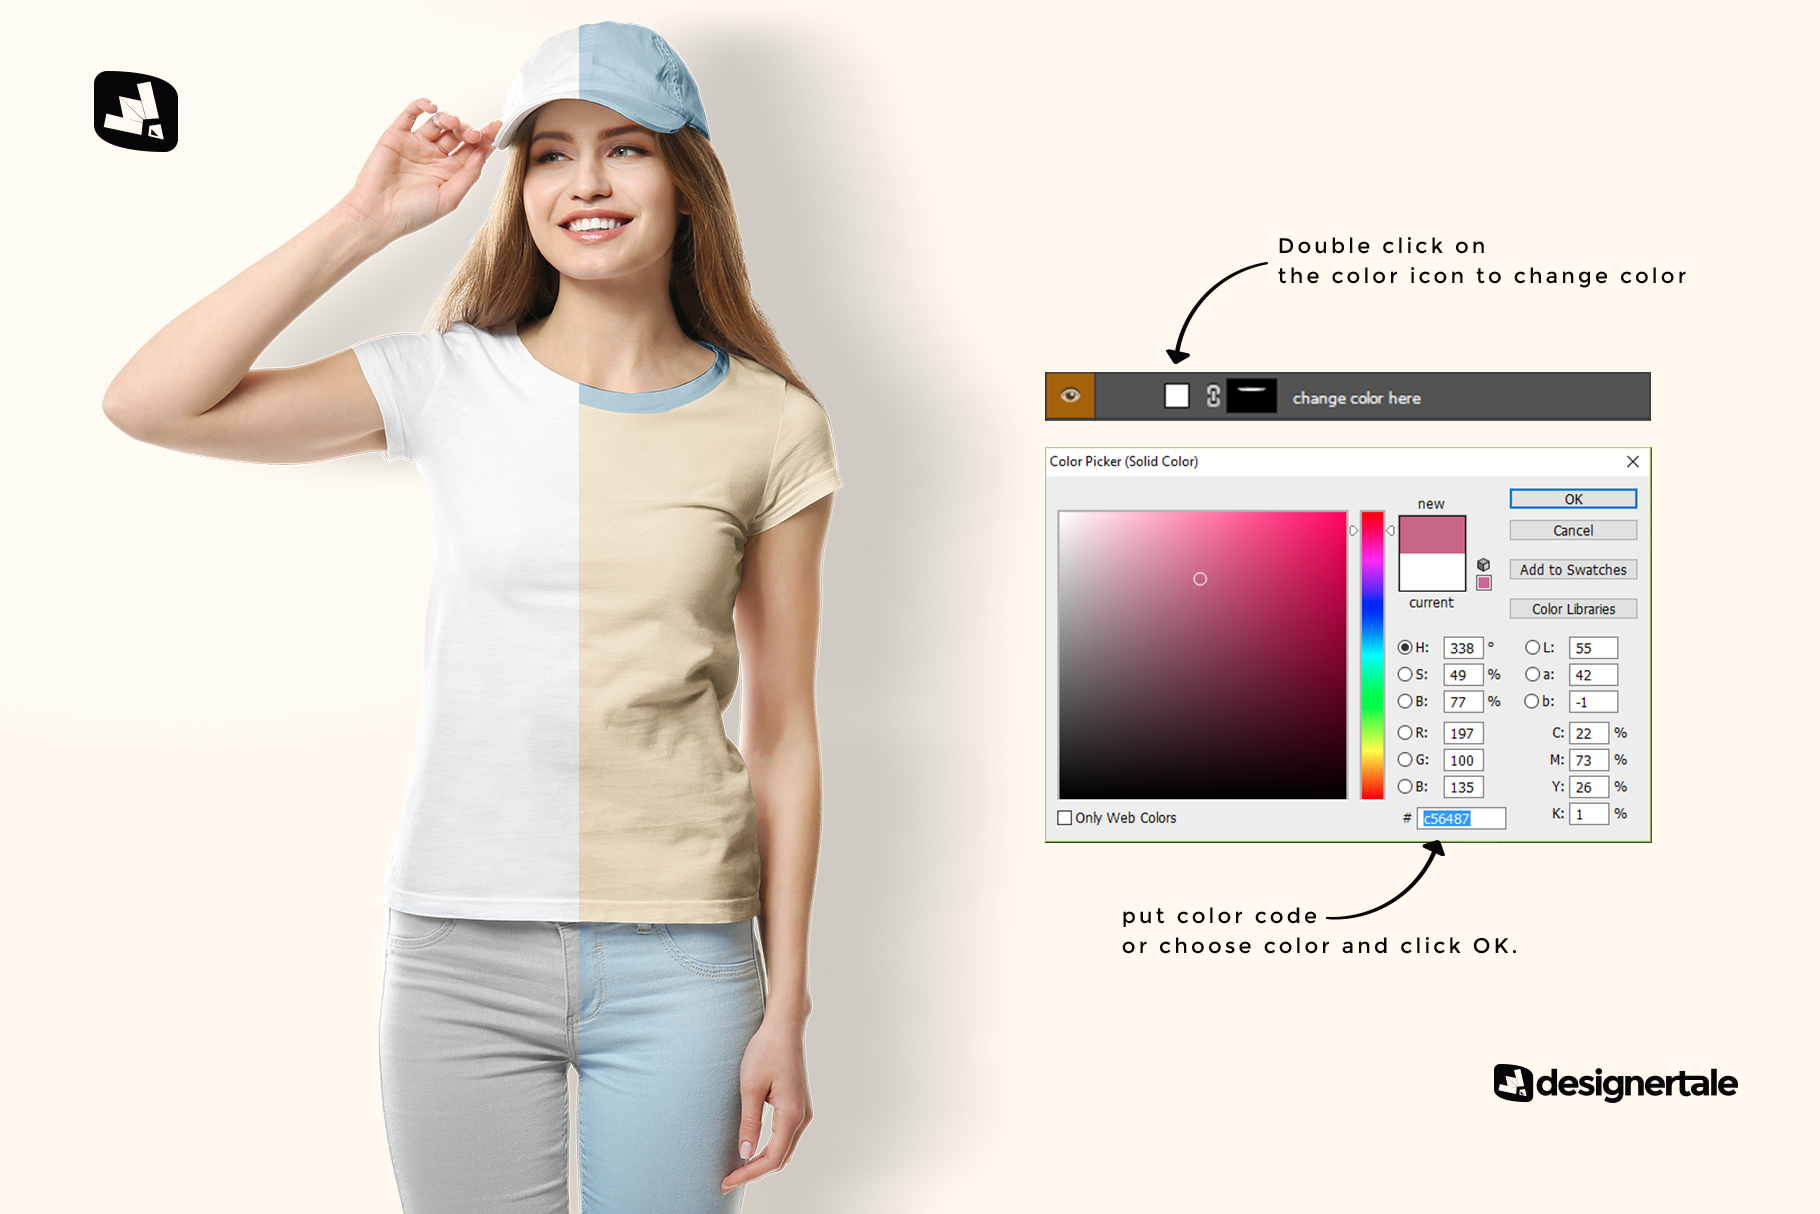 how to change color of the women's tshirt with cap mockup